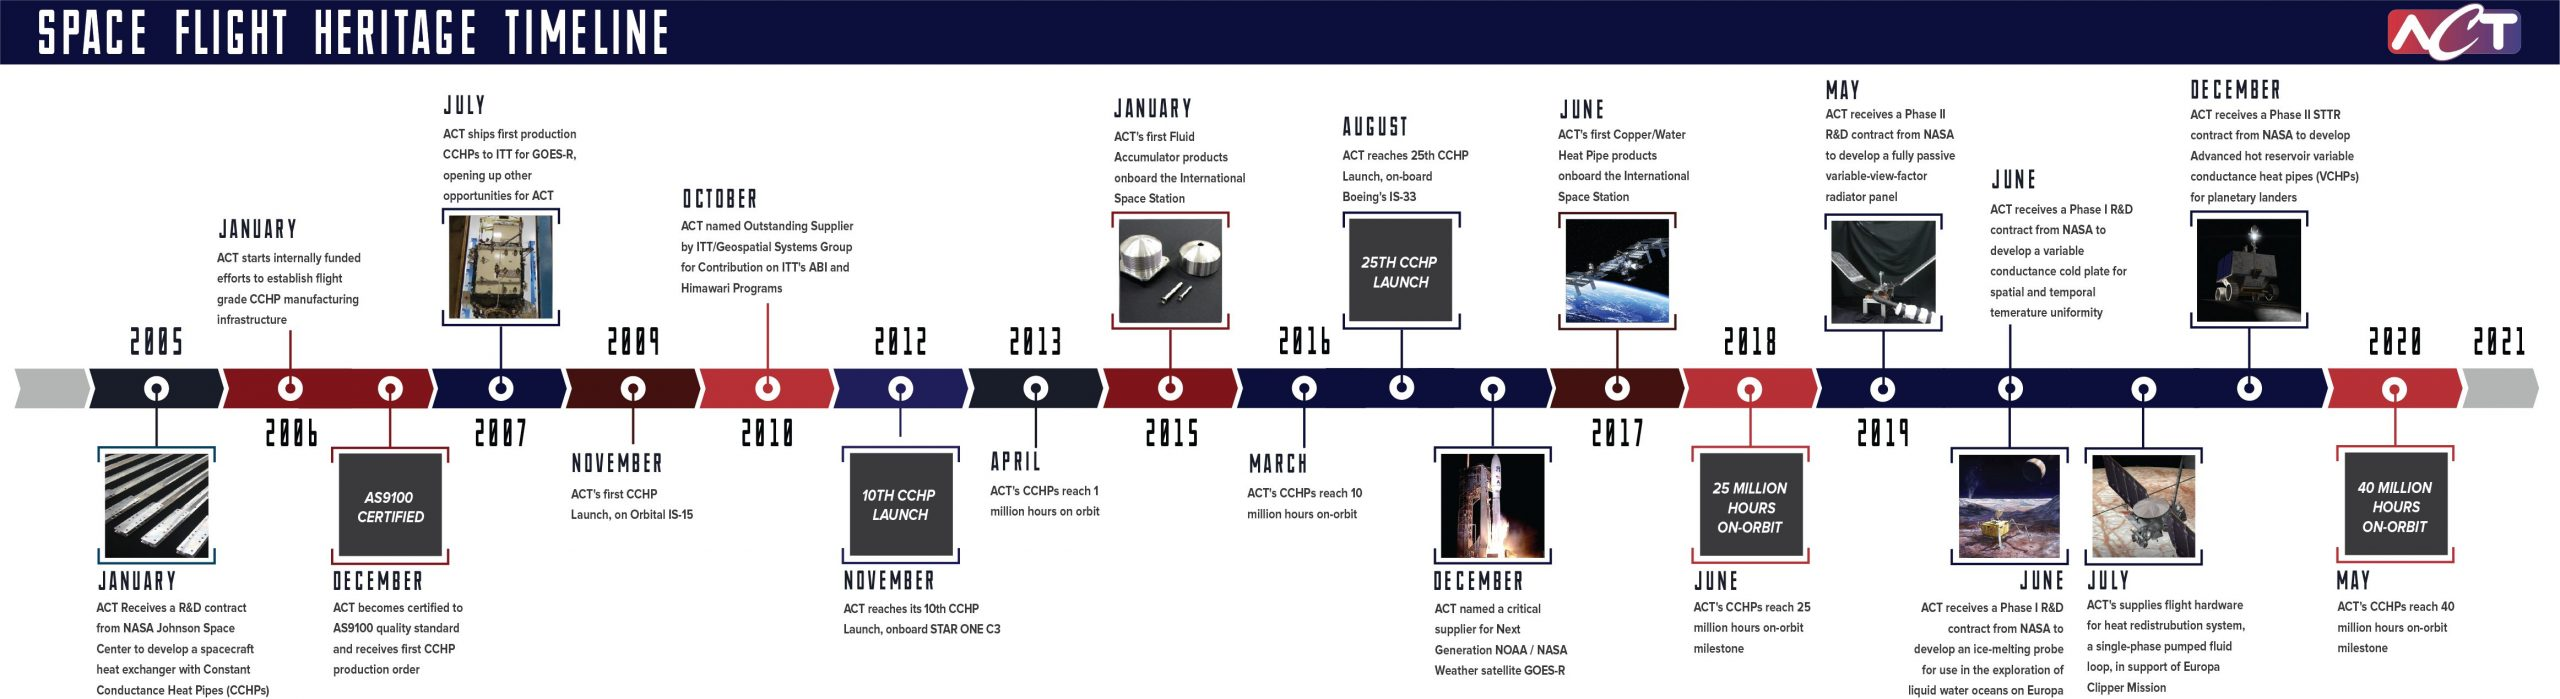 Advanced Cooling Technologies- Space Flight Heritage Timeline, since 2005